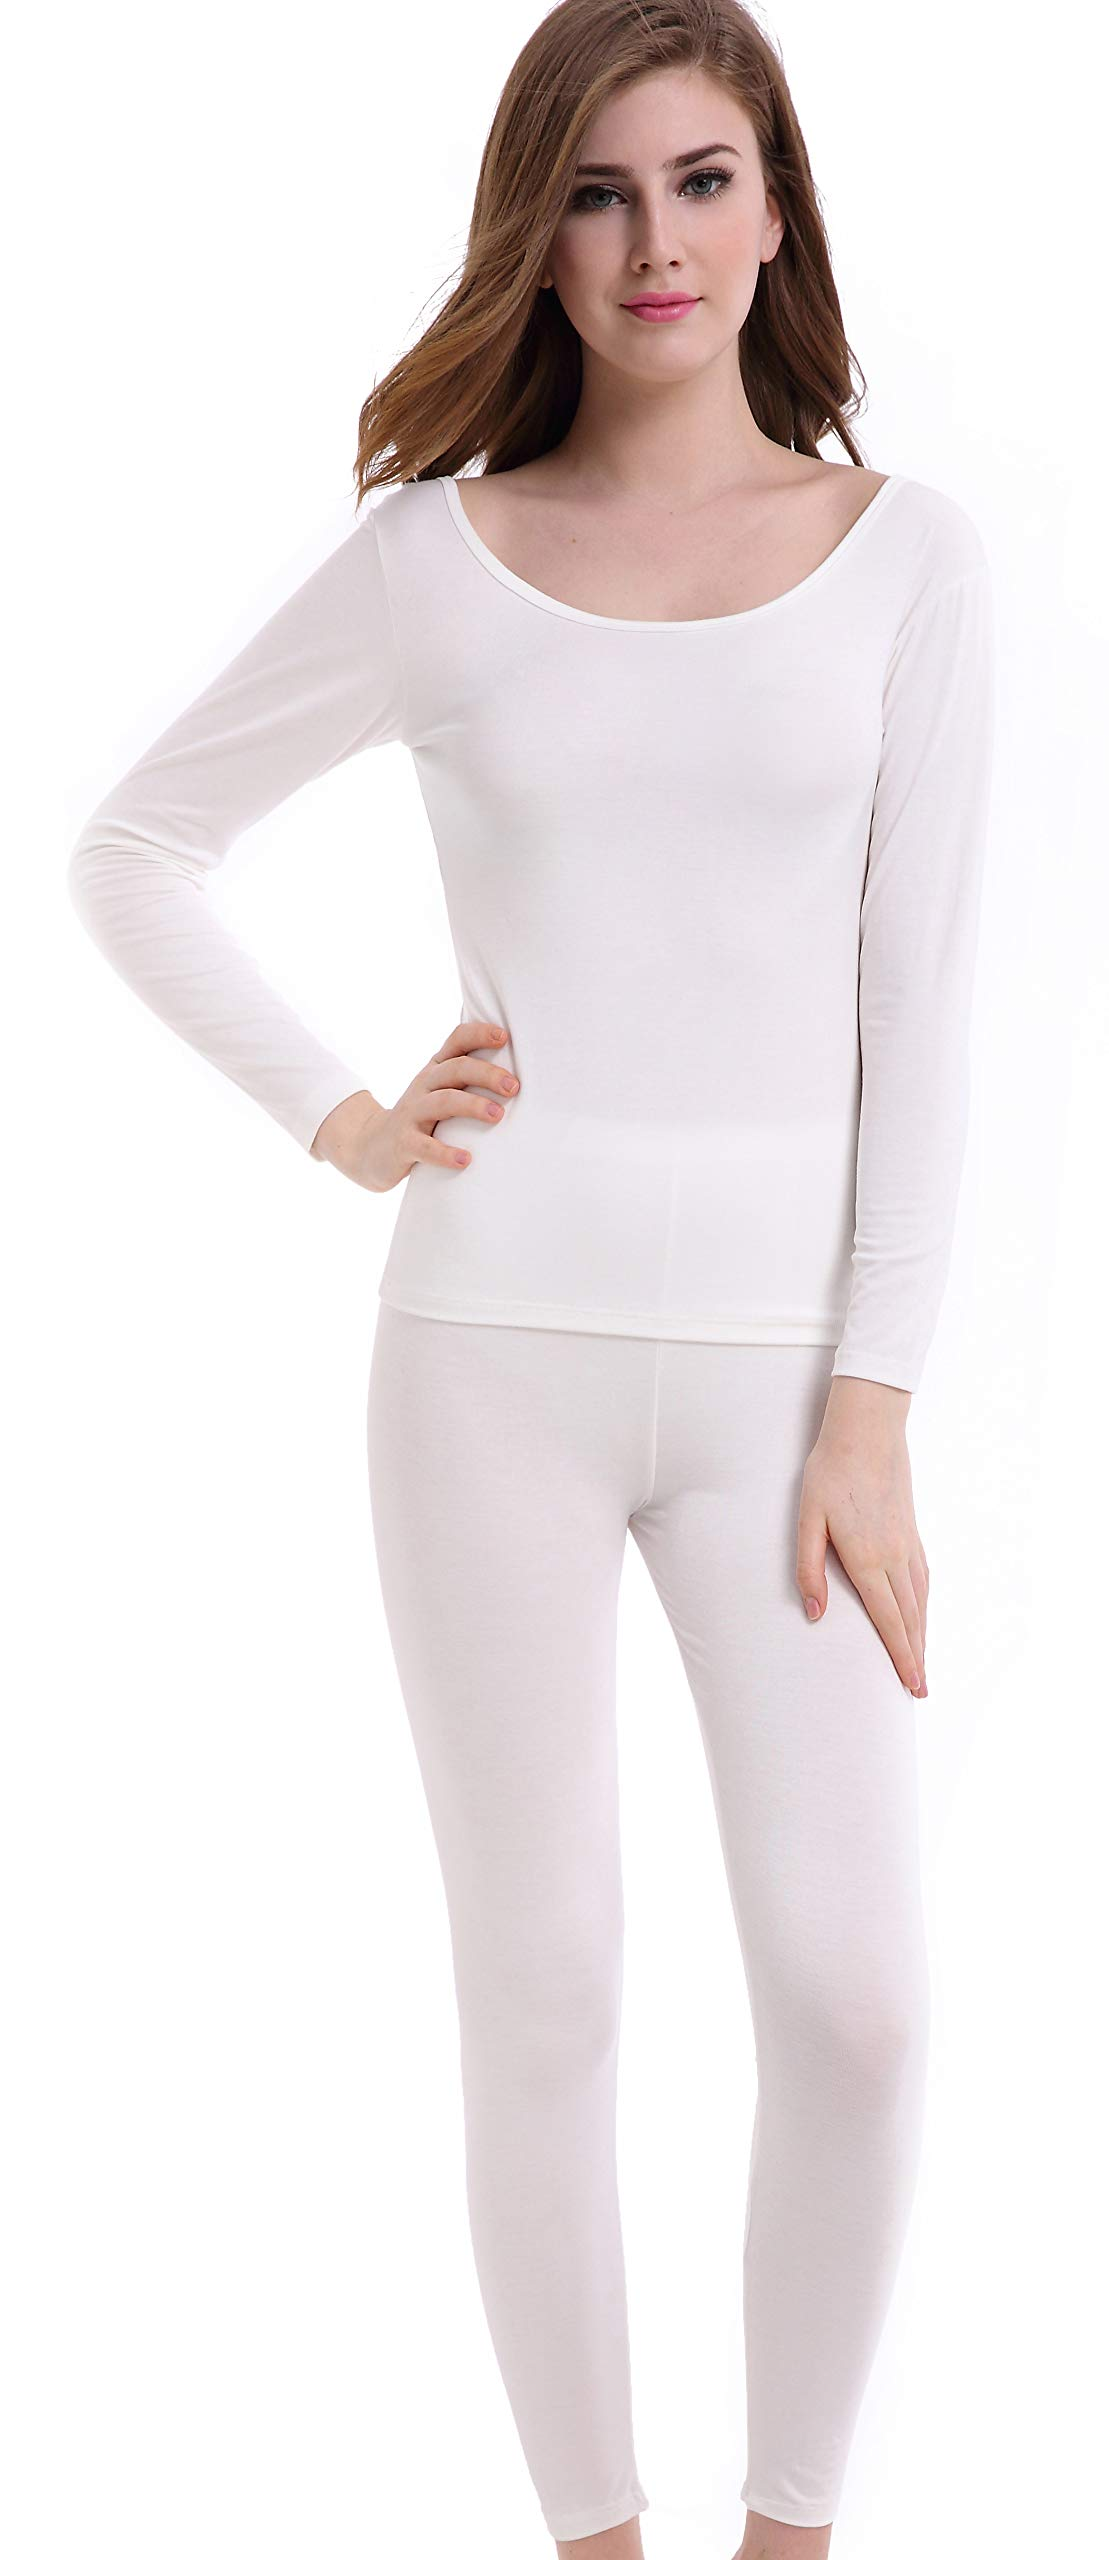 Thermal Underwear Women Long - Scoop Neck Ultra - Thin Johns Set Top & Bottom Ivory Off White by CnlanRow